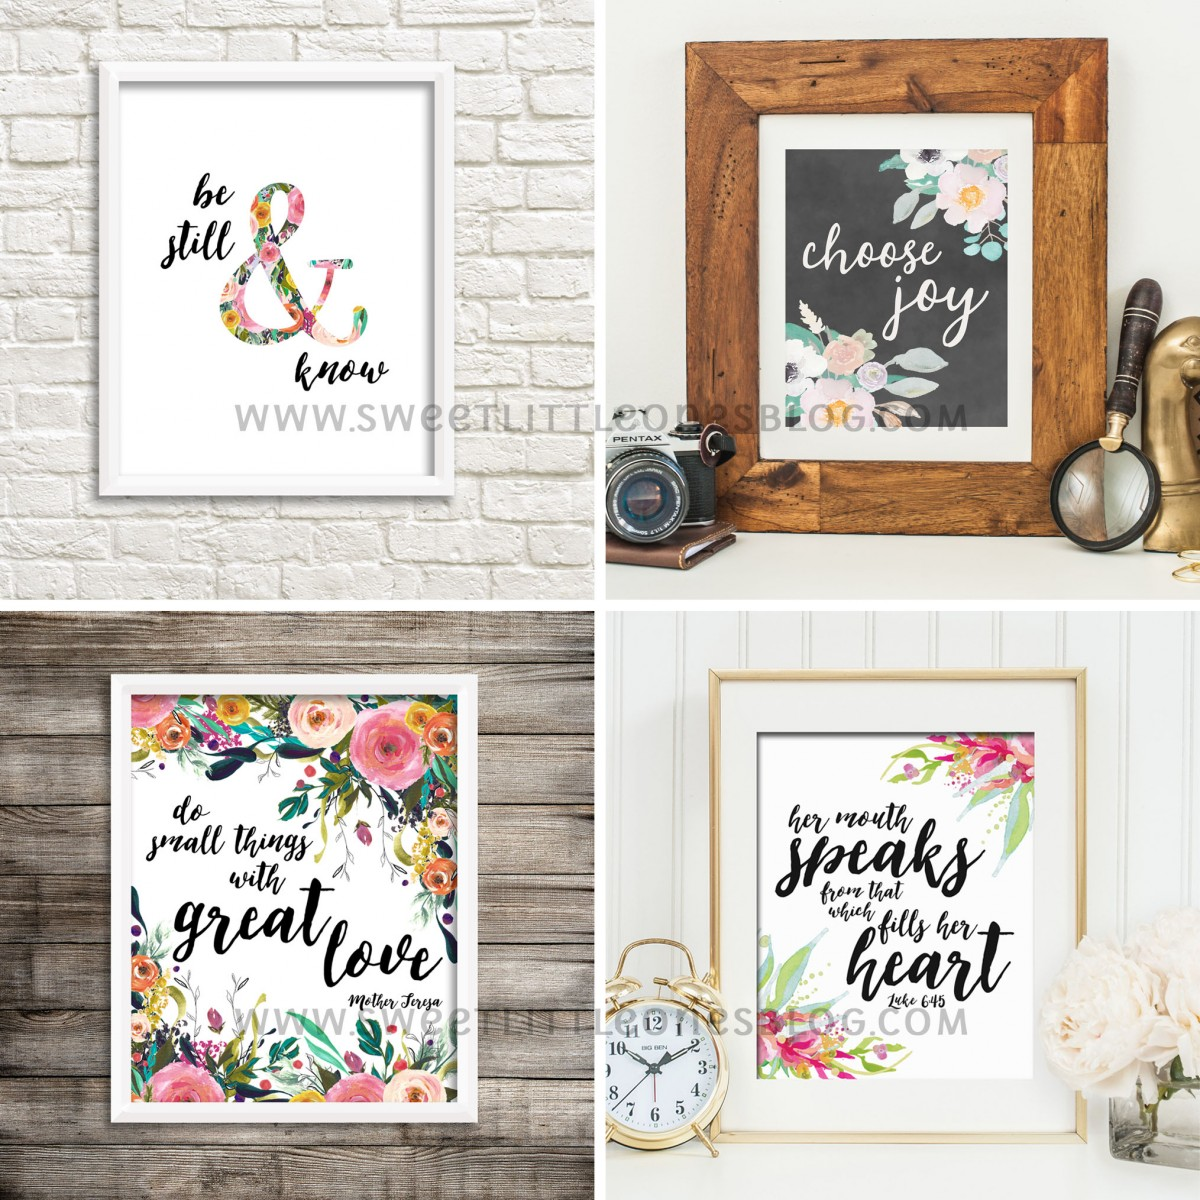 Beautiful printables from Sweet Little Ones Etsy shop!